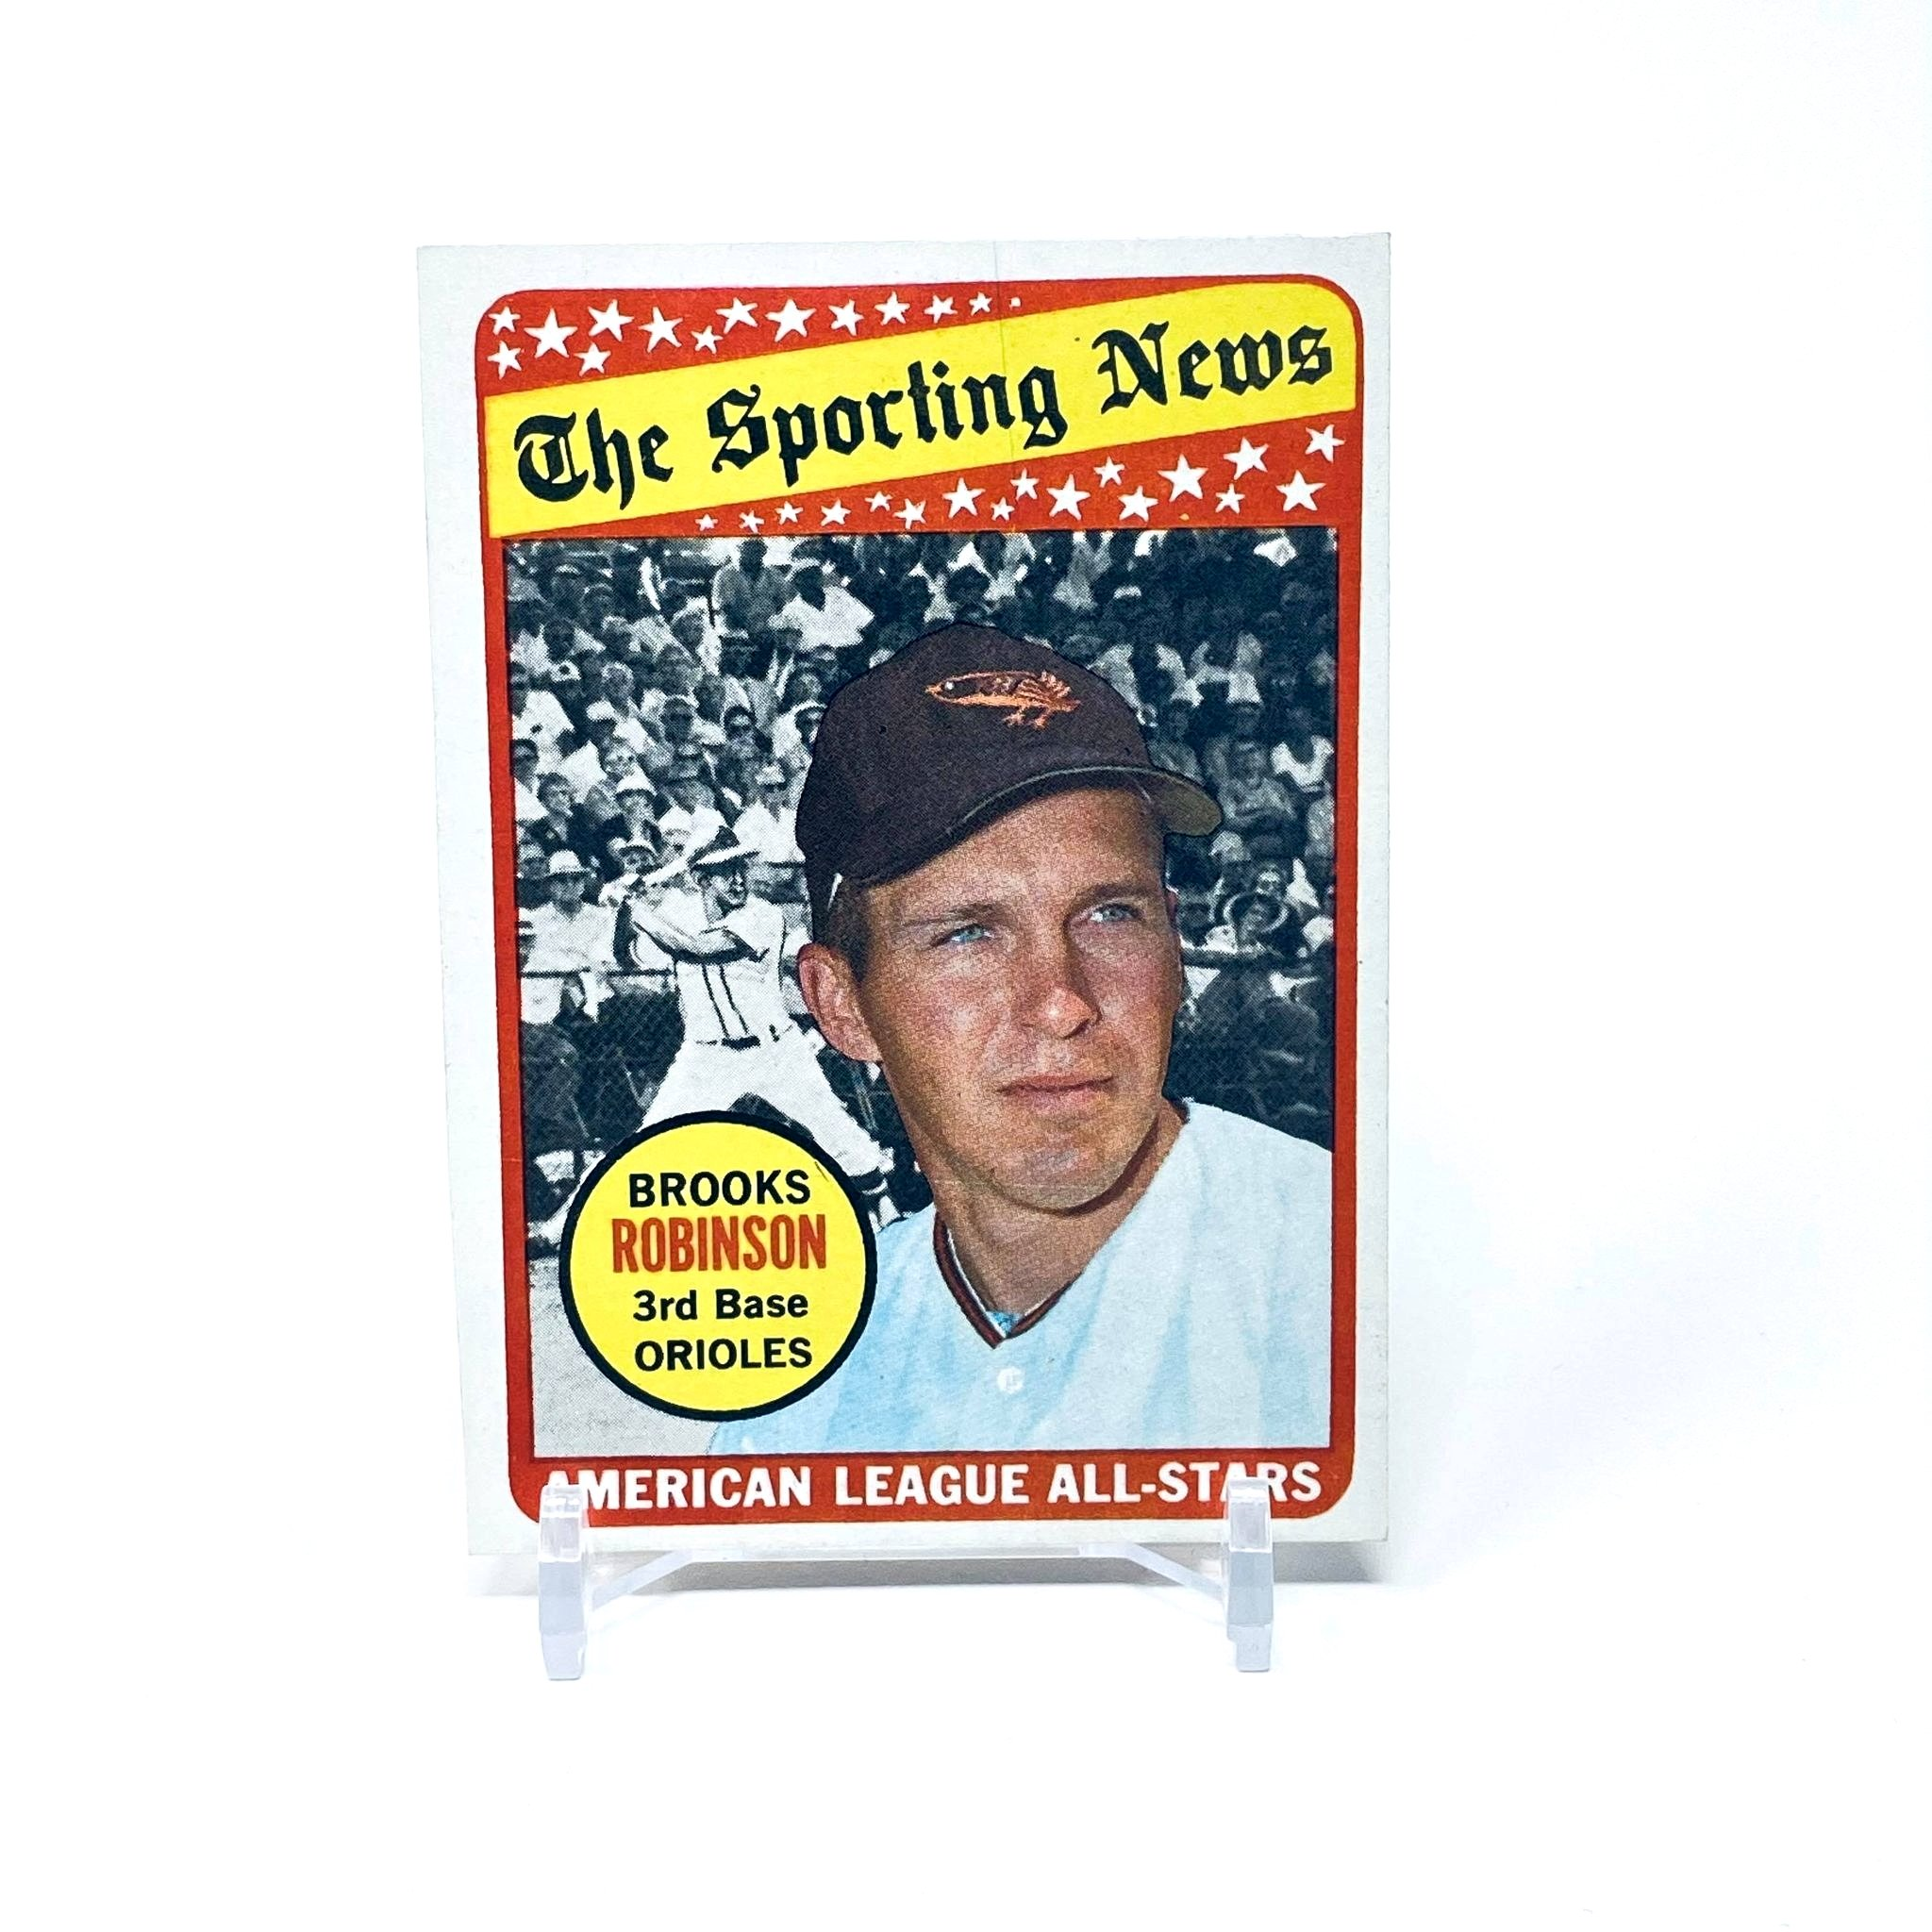 1969 Topps A.L. All Star Brooks Robinson Baltimore Orioles